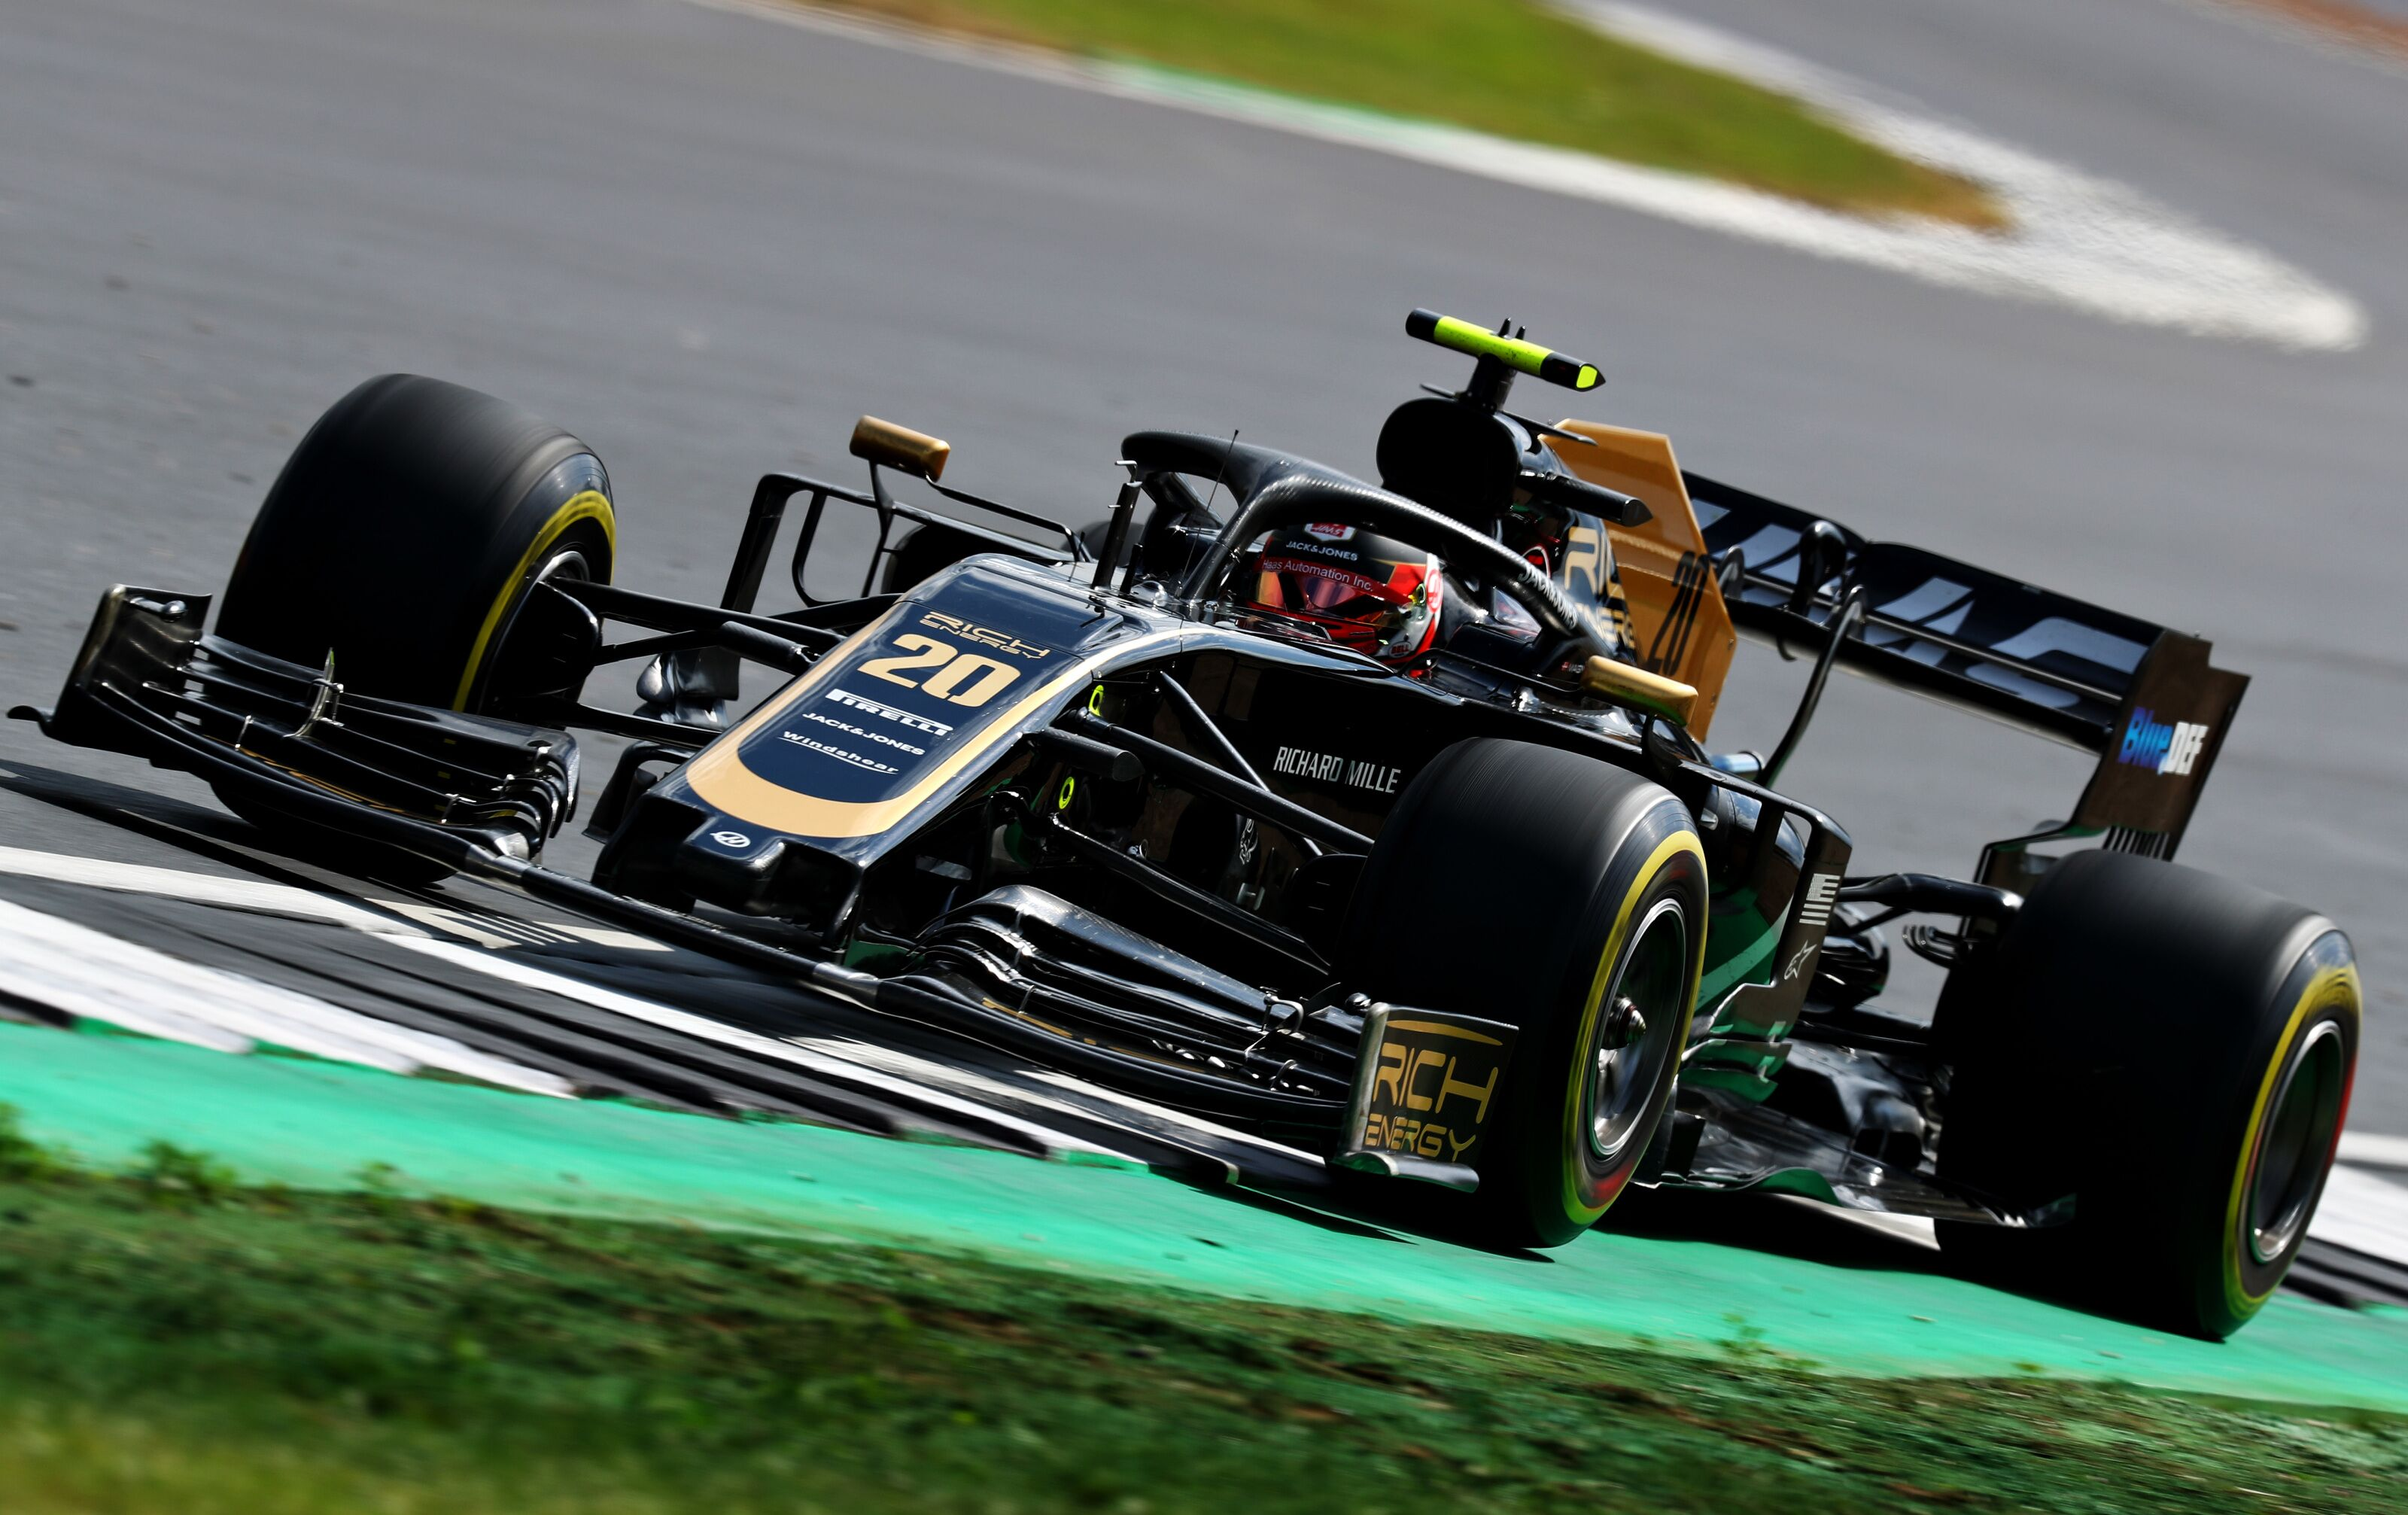 Formula 1: Rich Energy 'congratulate' Haas on early double retirement